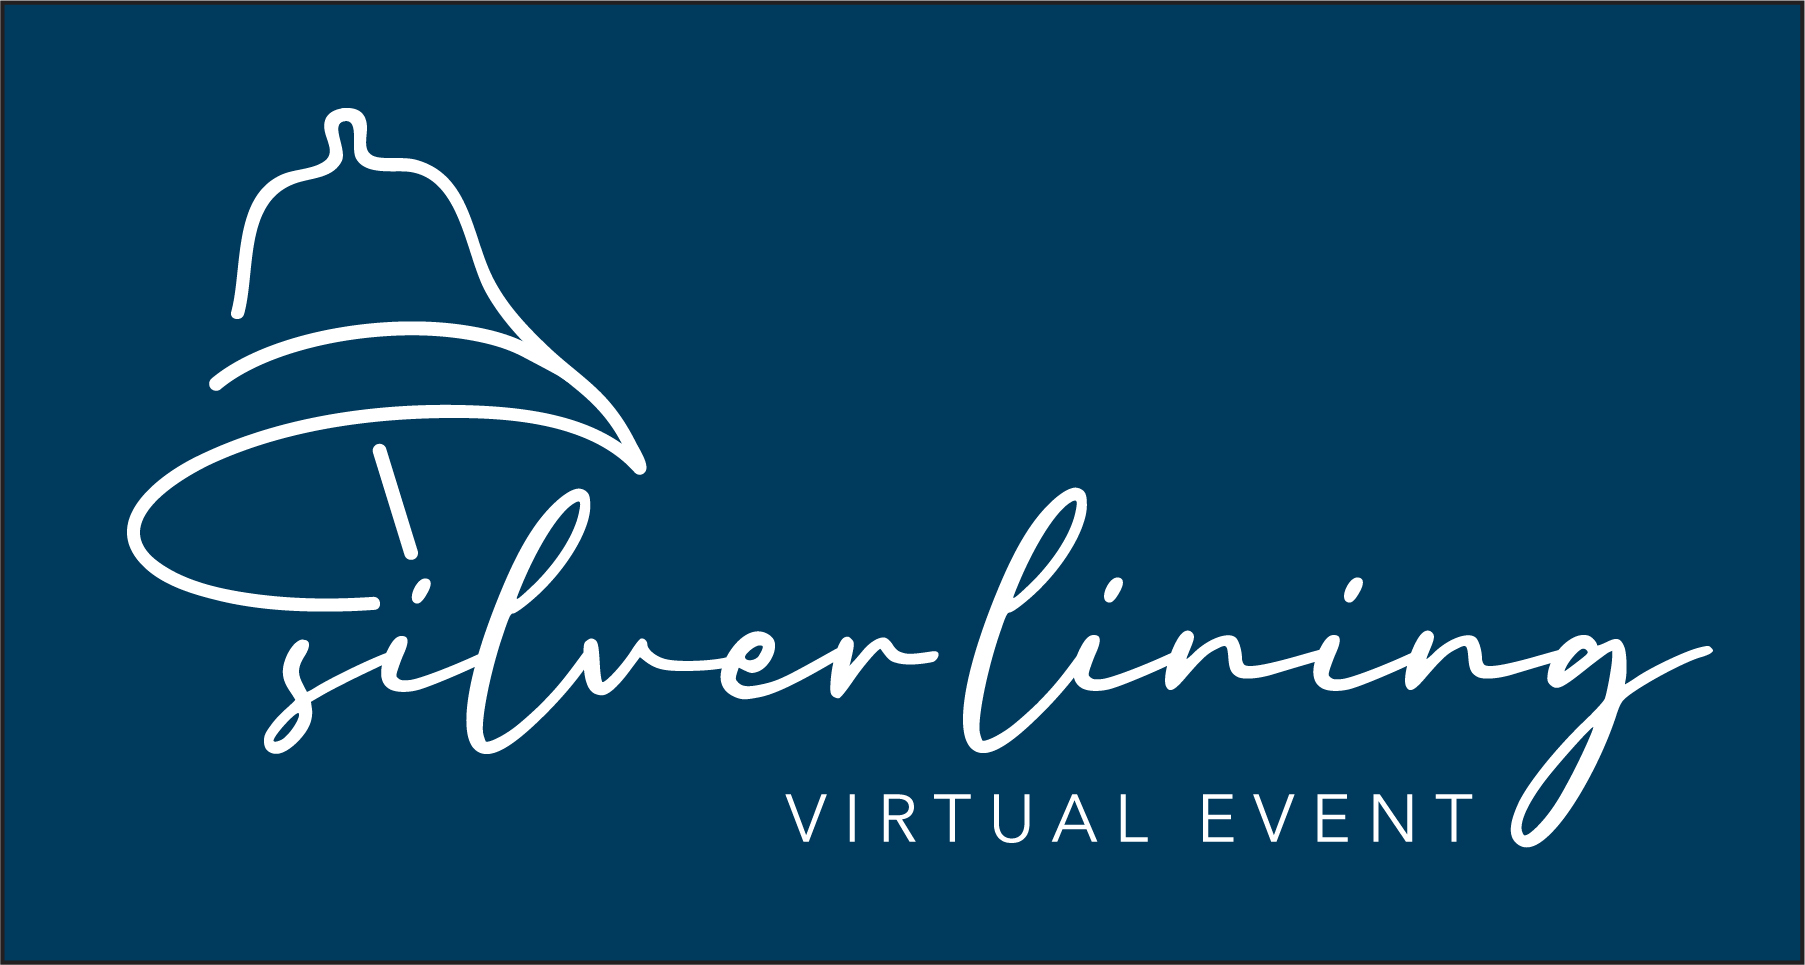 Silver Lining Online Auction